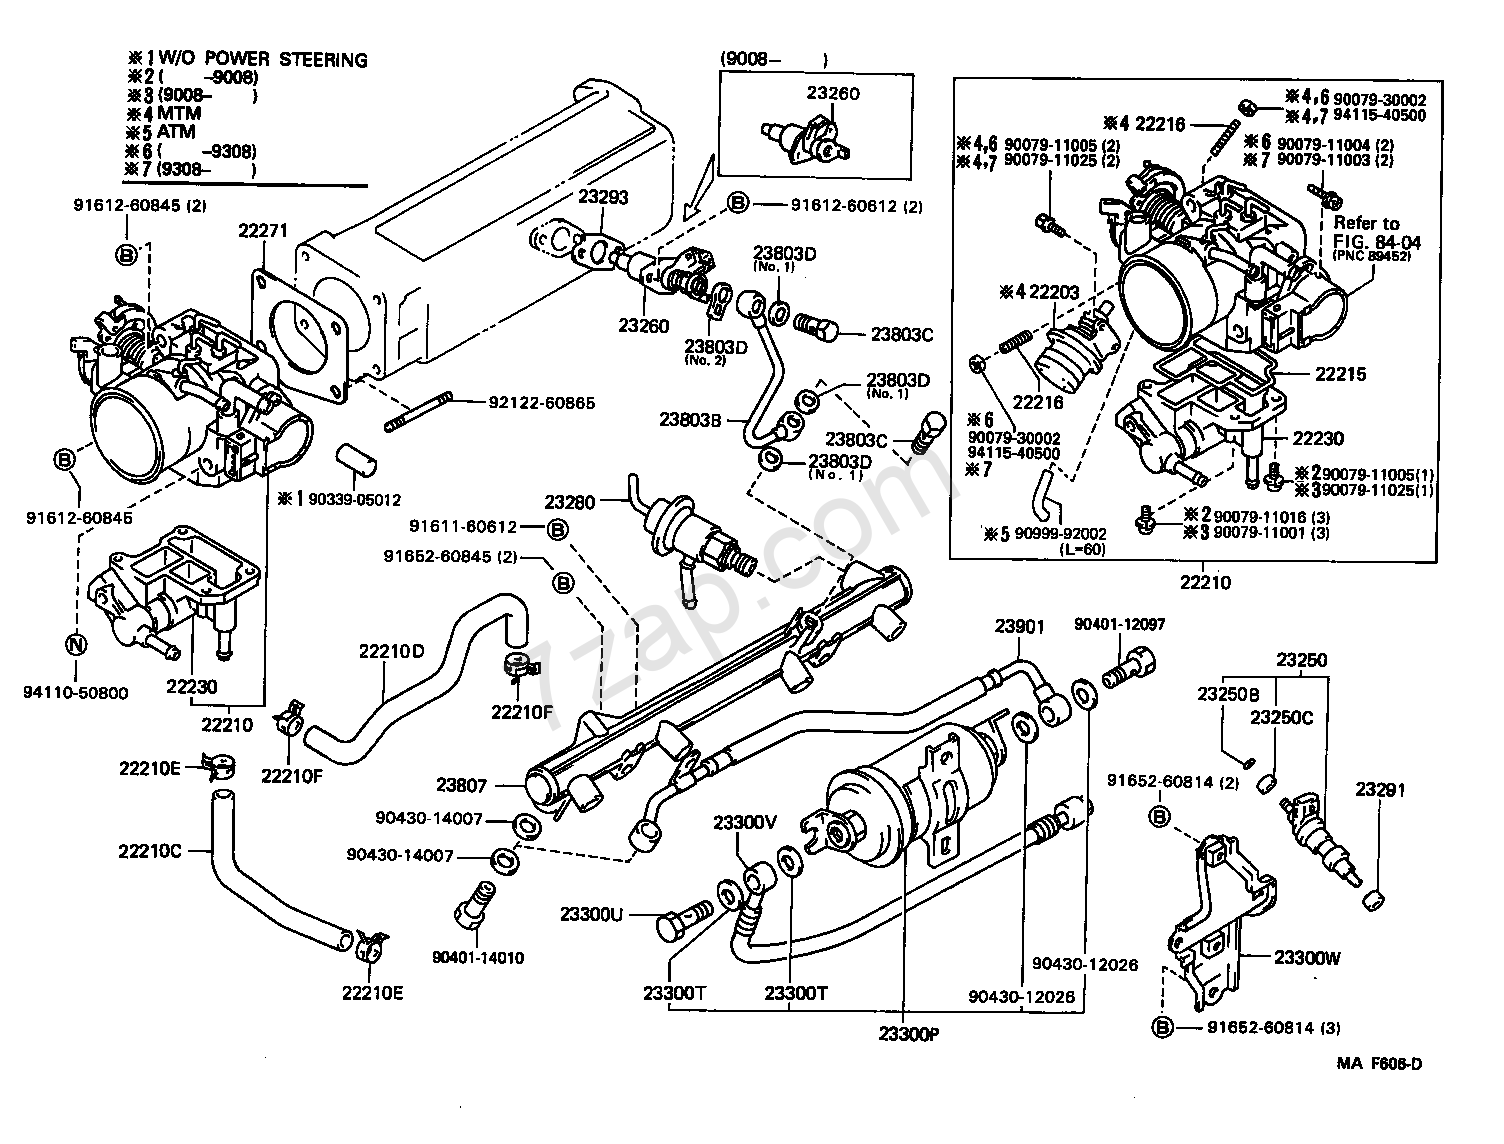 FUEL INJECTION SYSTEM  ILLUST NO 1 OF 2 8808     22RE         TOYOTA    4RUNNER TRUCK  RN10  110 13